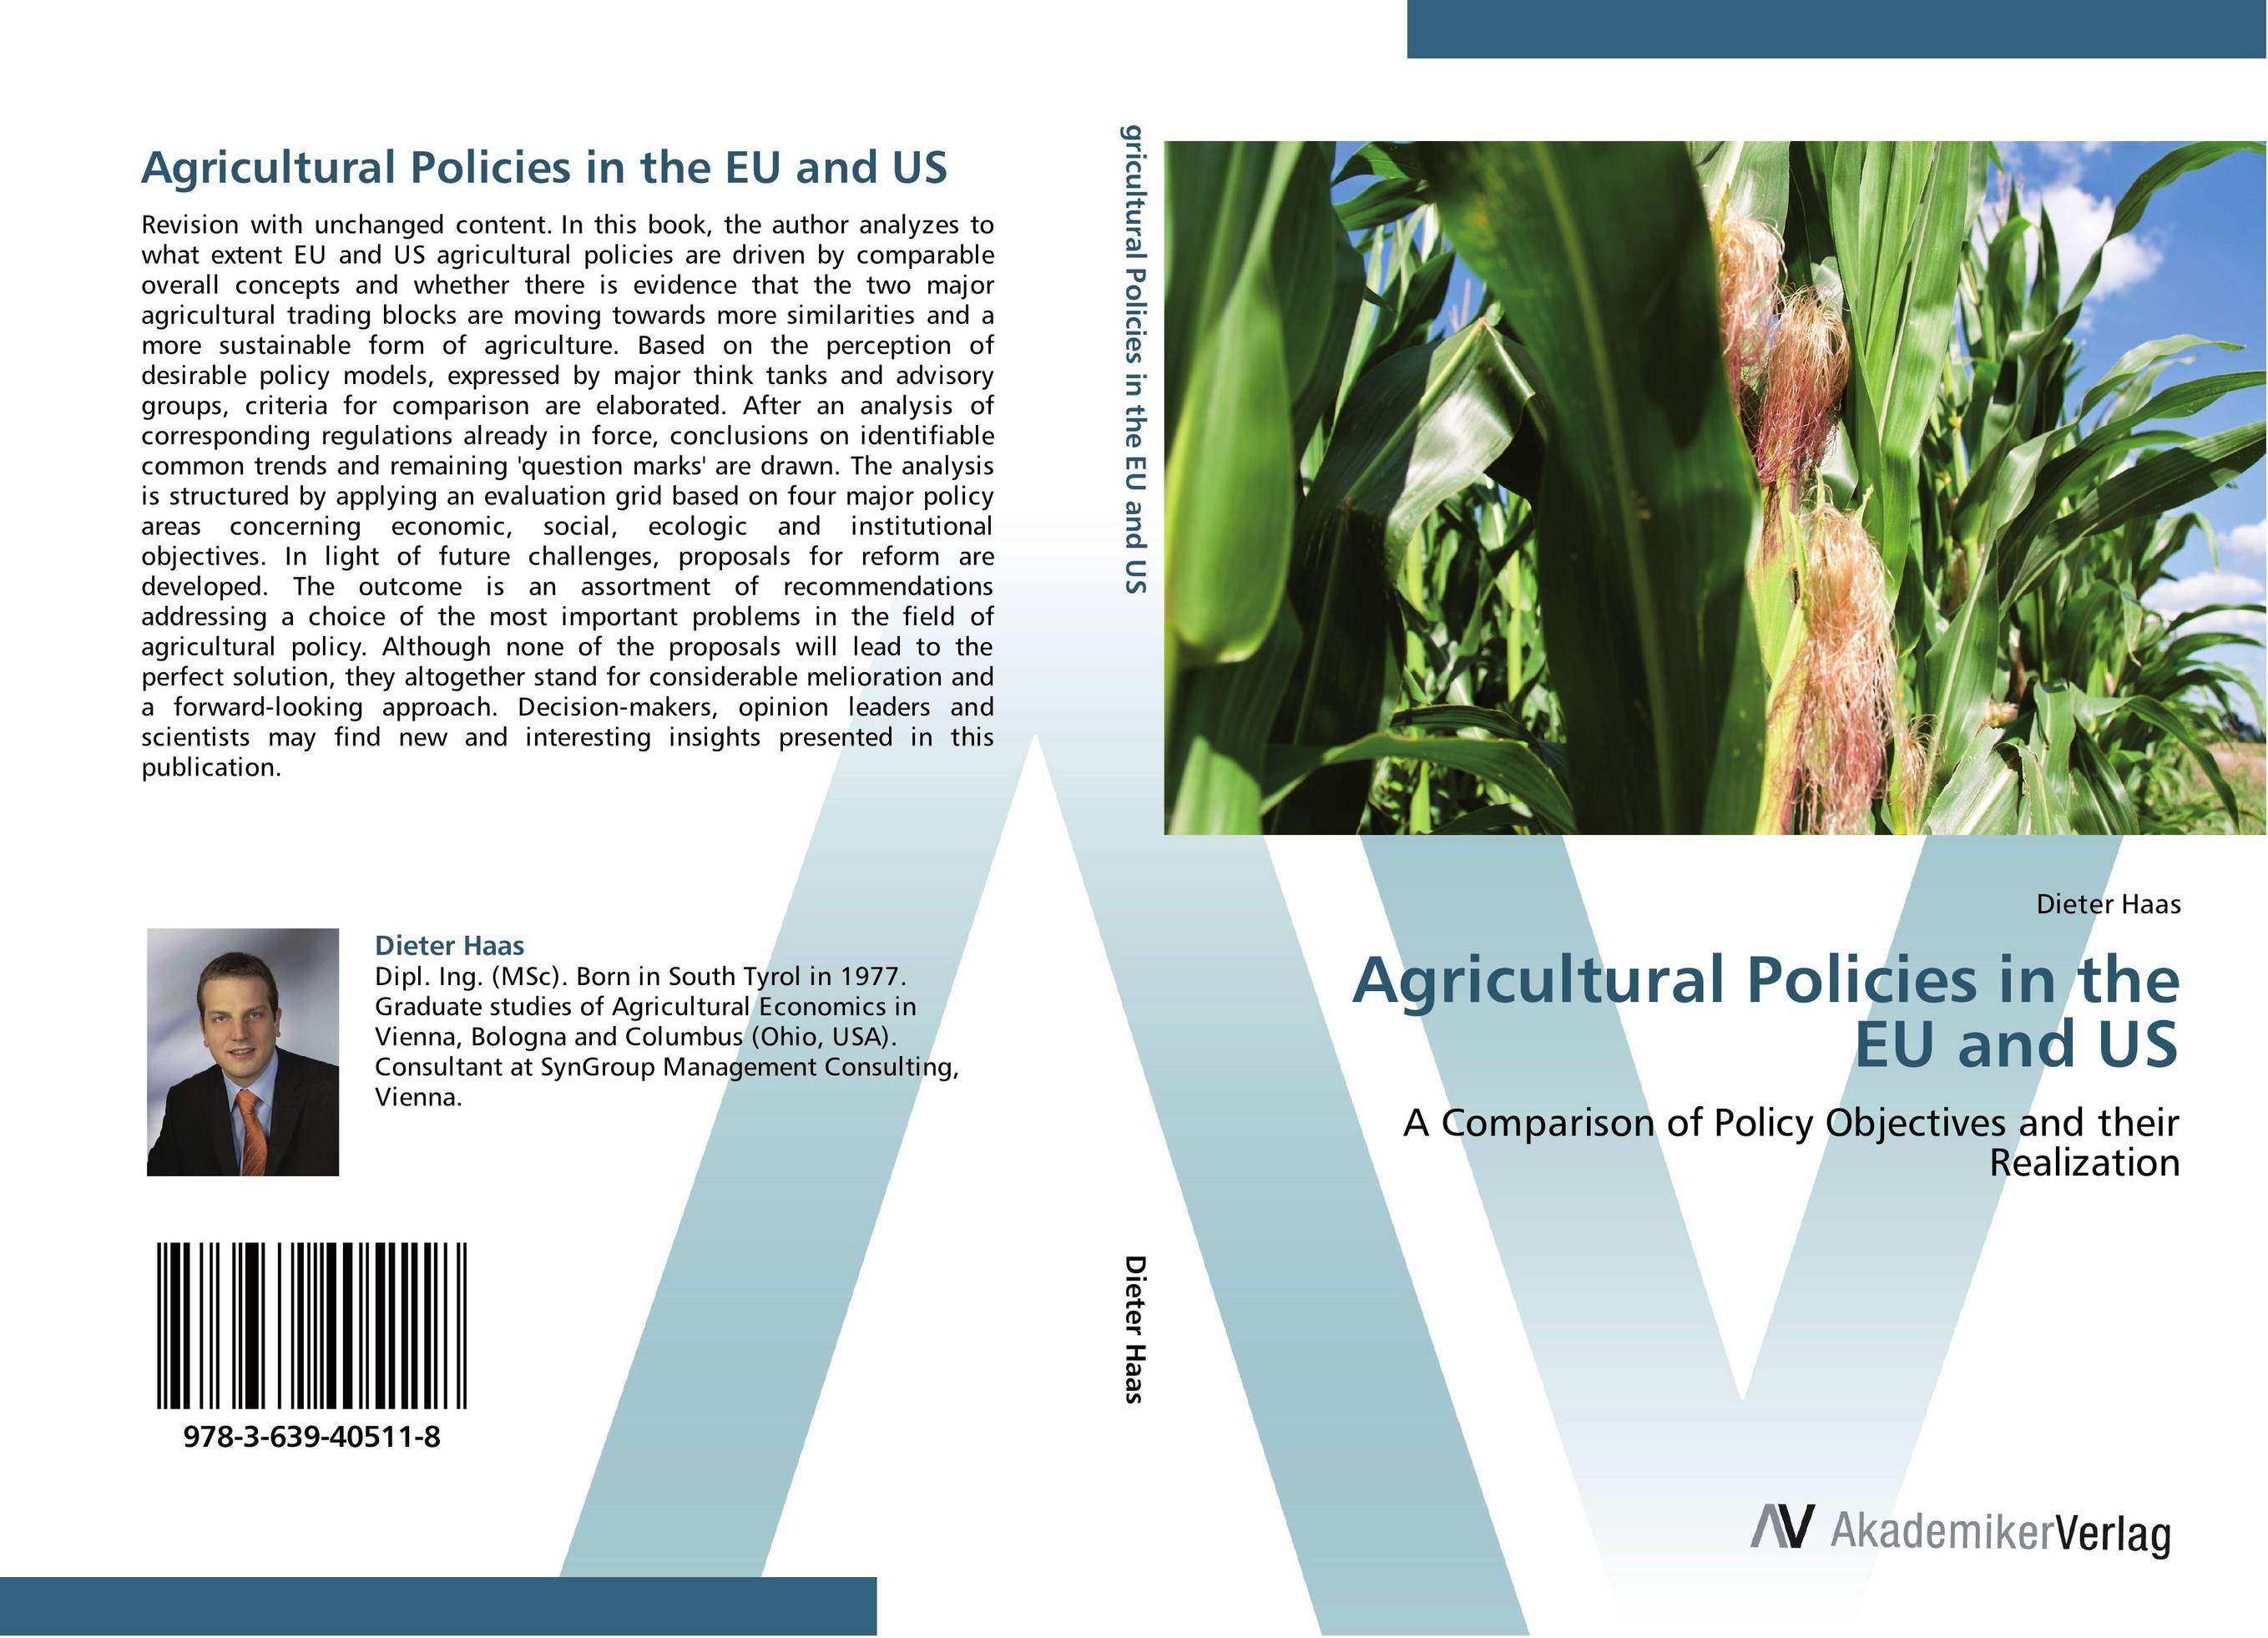 Agricultural Policies in the EU and US